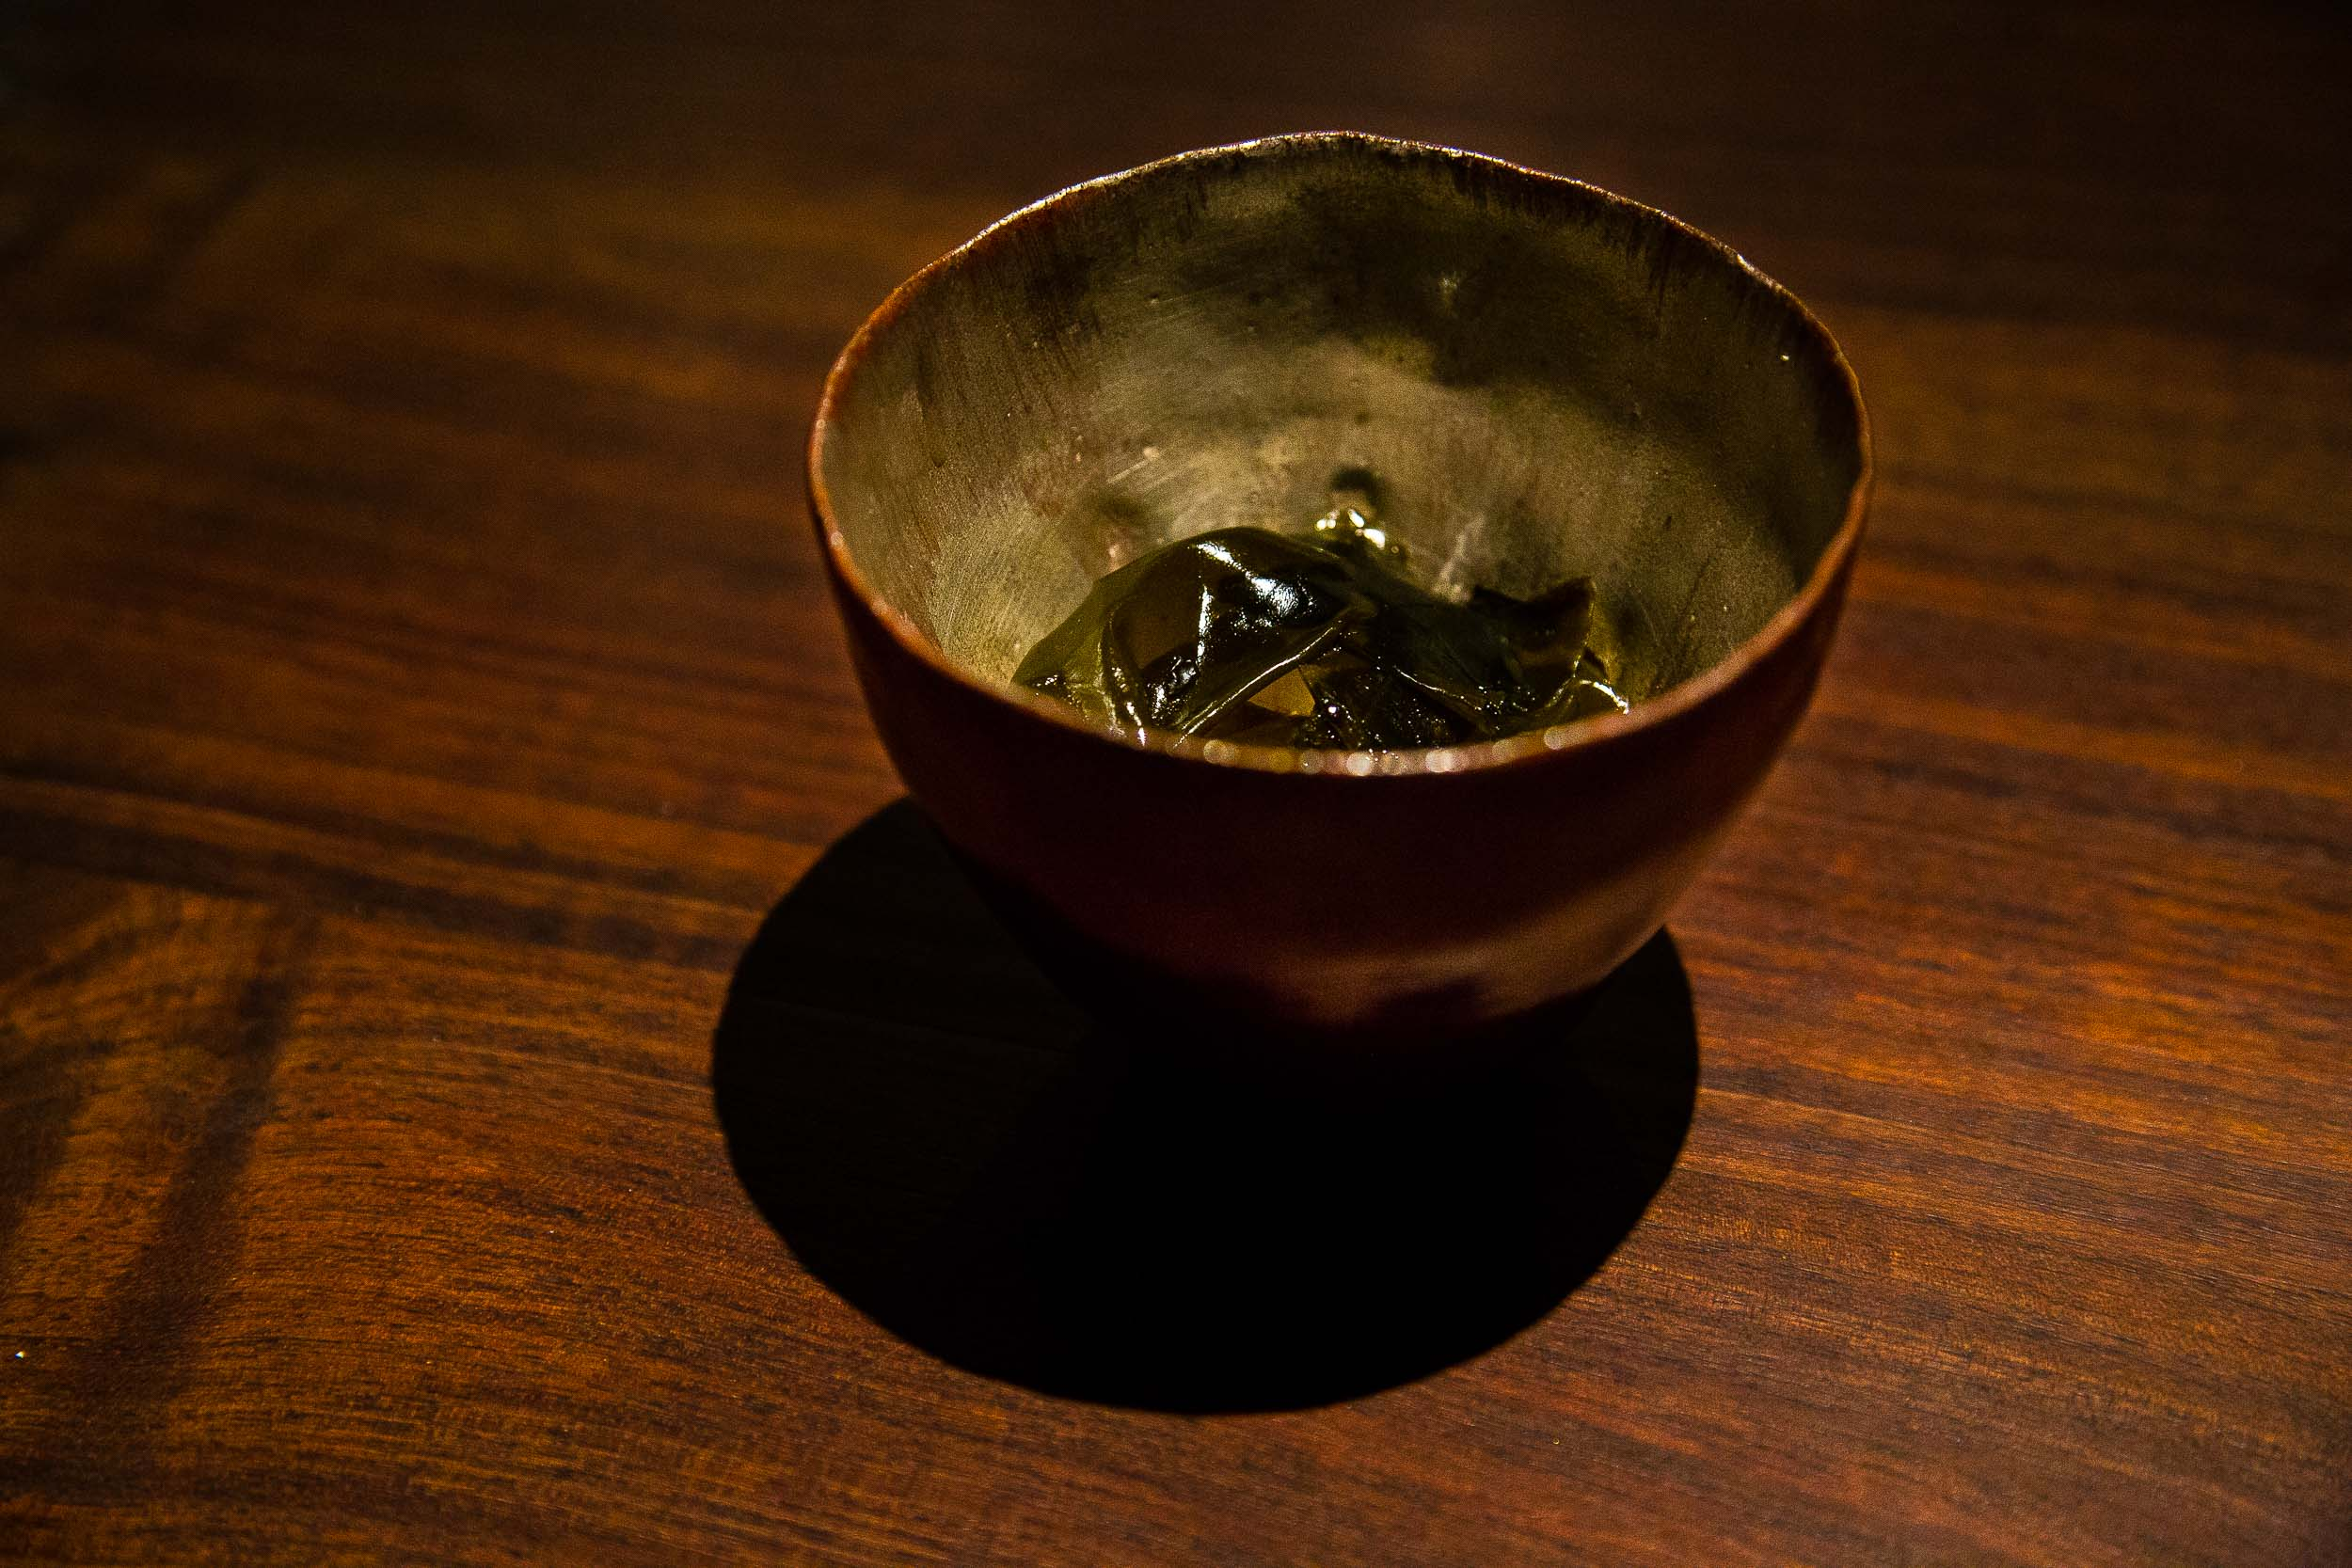 Monterey Bay abalone, seaweed, and rice with sauce made of abalone liver and capers.